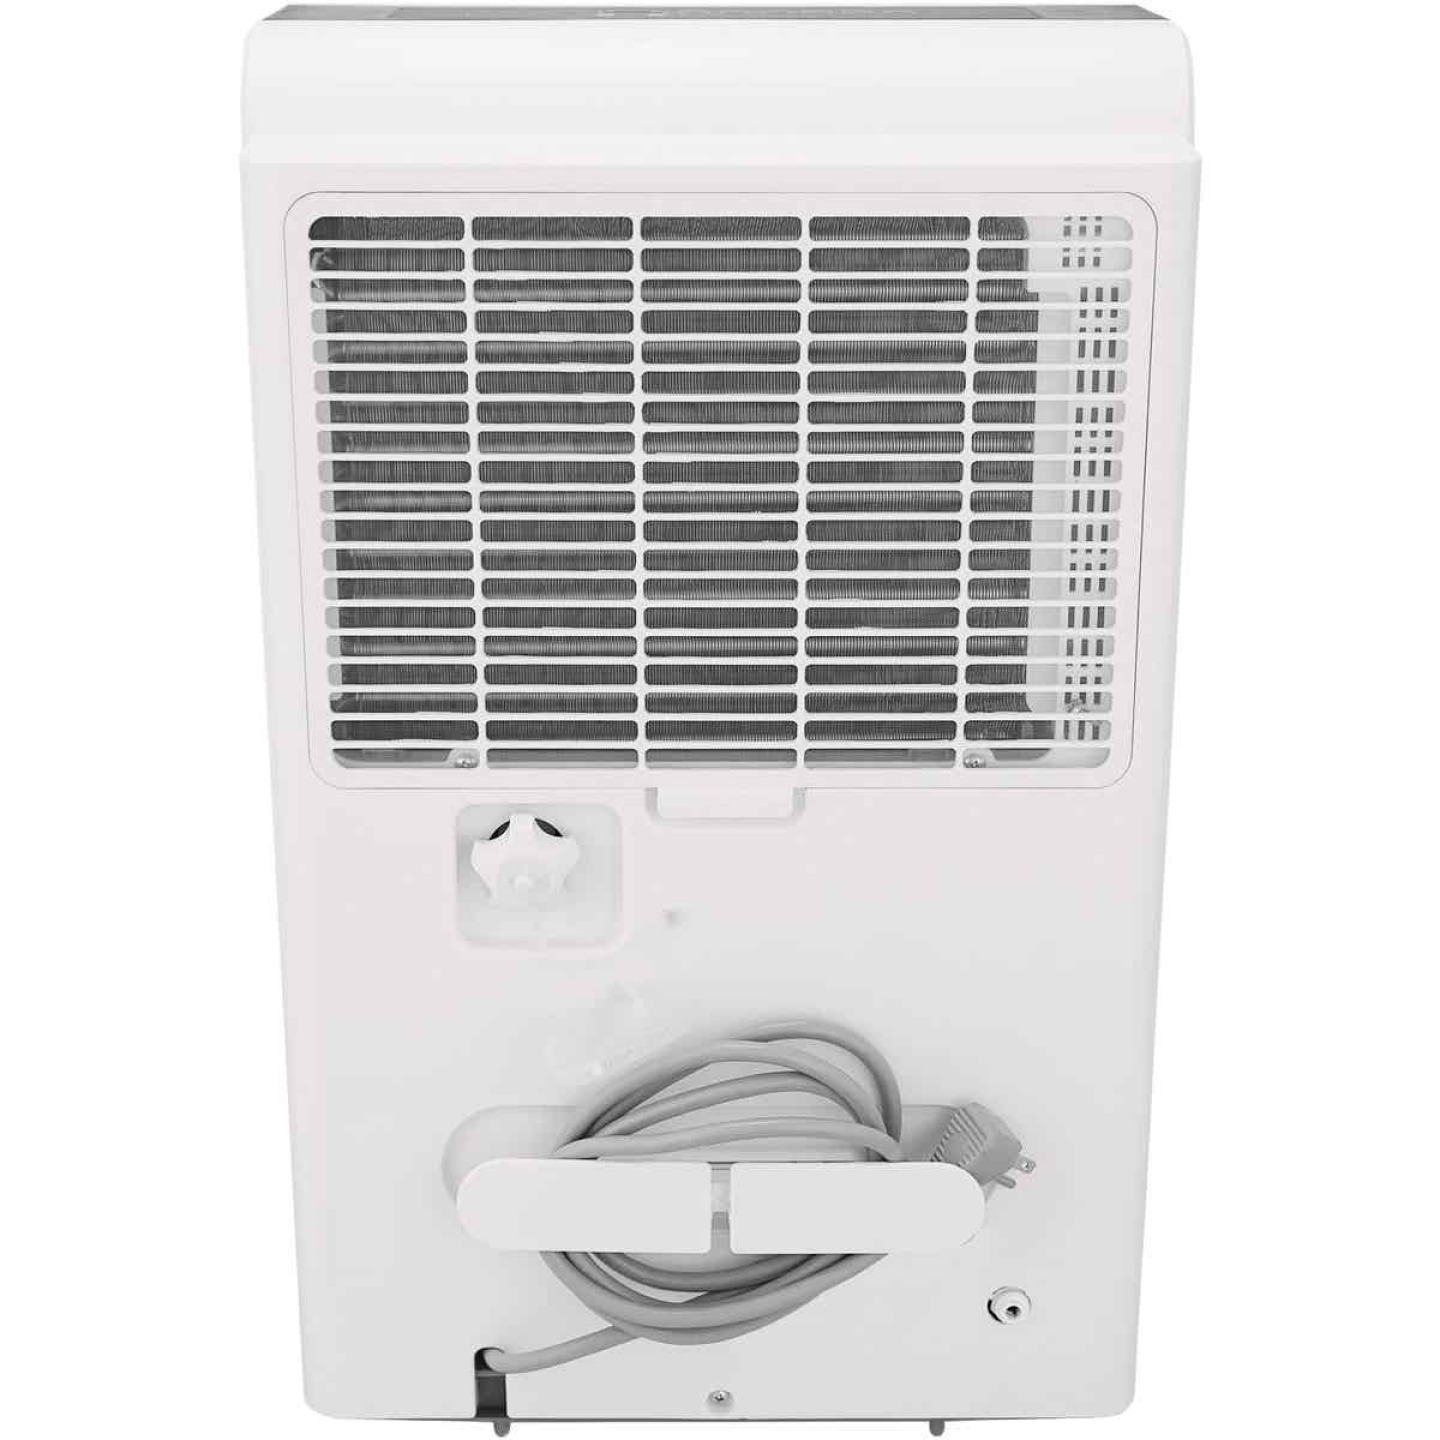 Perfect Aire 35 Pt./Day 592 Sq. Ft. Coverage 2-Speed Flat Panel Dehumidifier Image 3